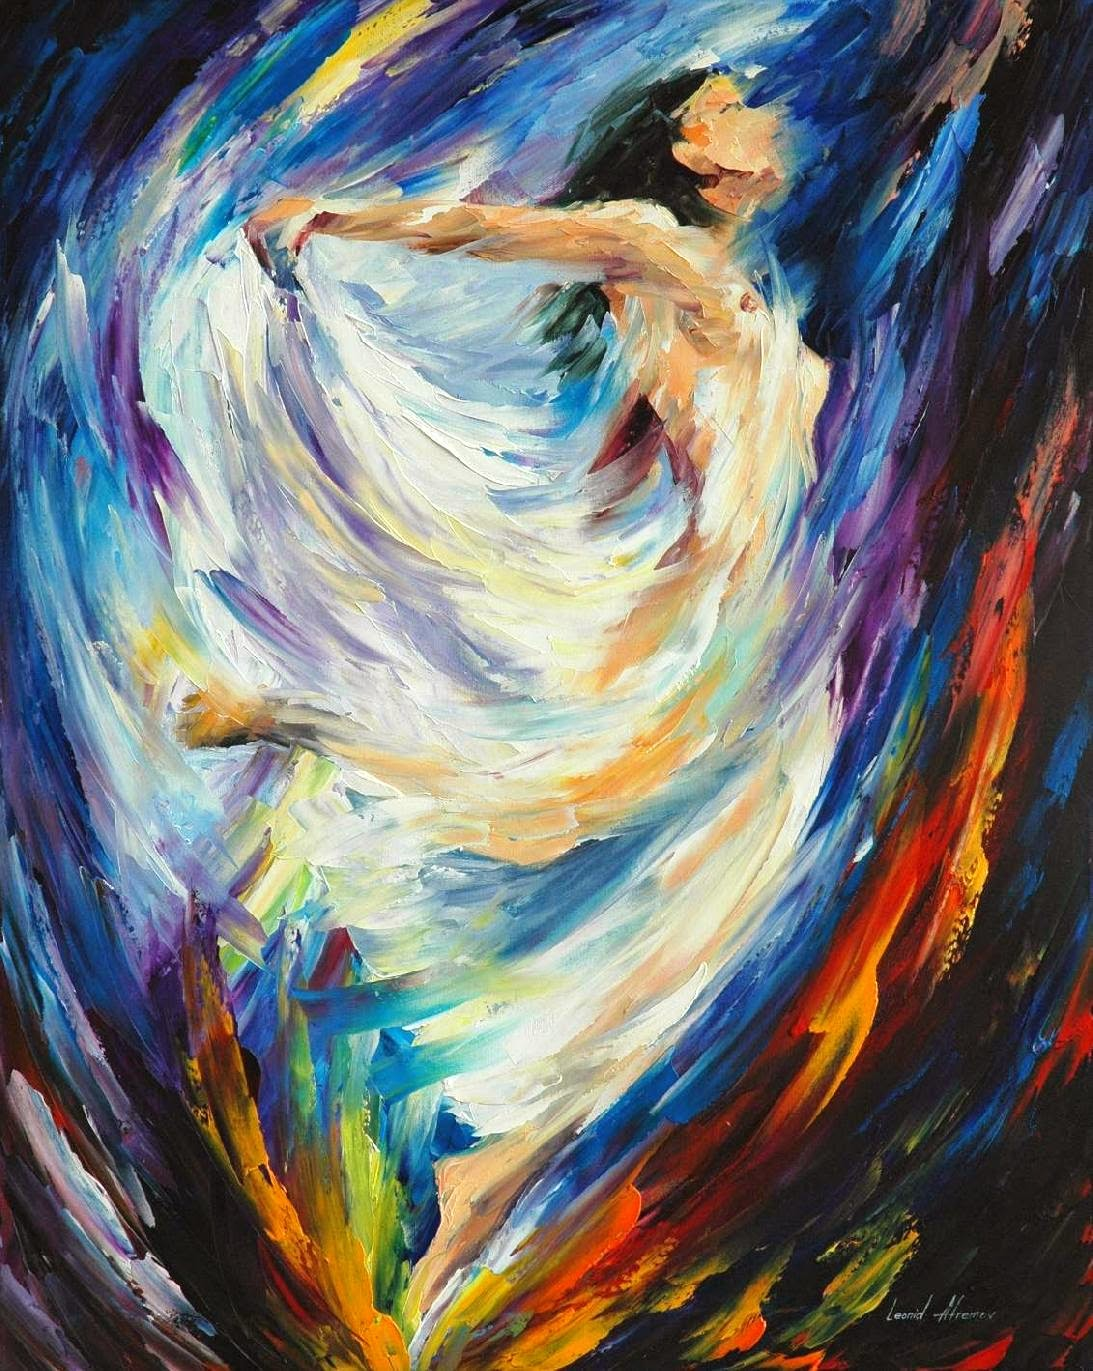 http://afremov.com/product.php?productid=17910